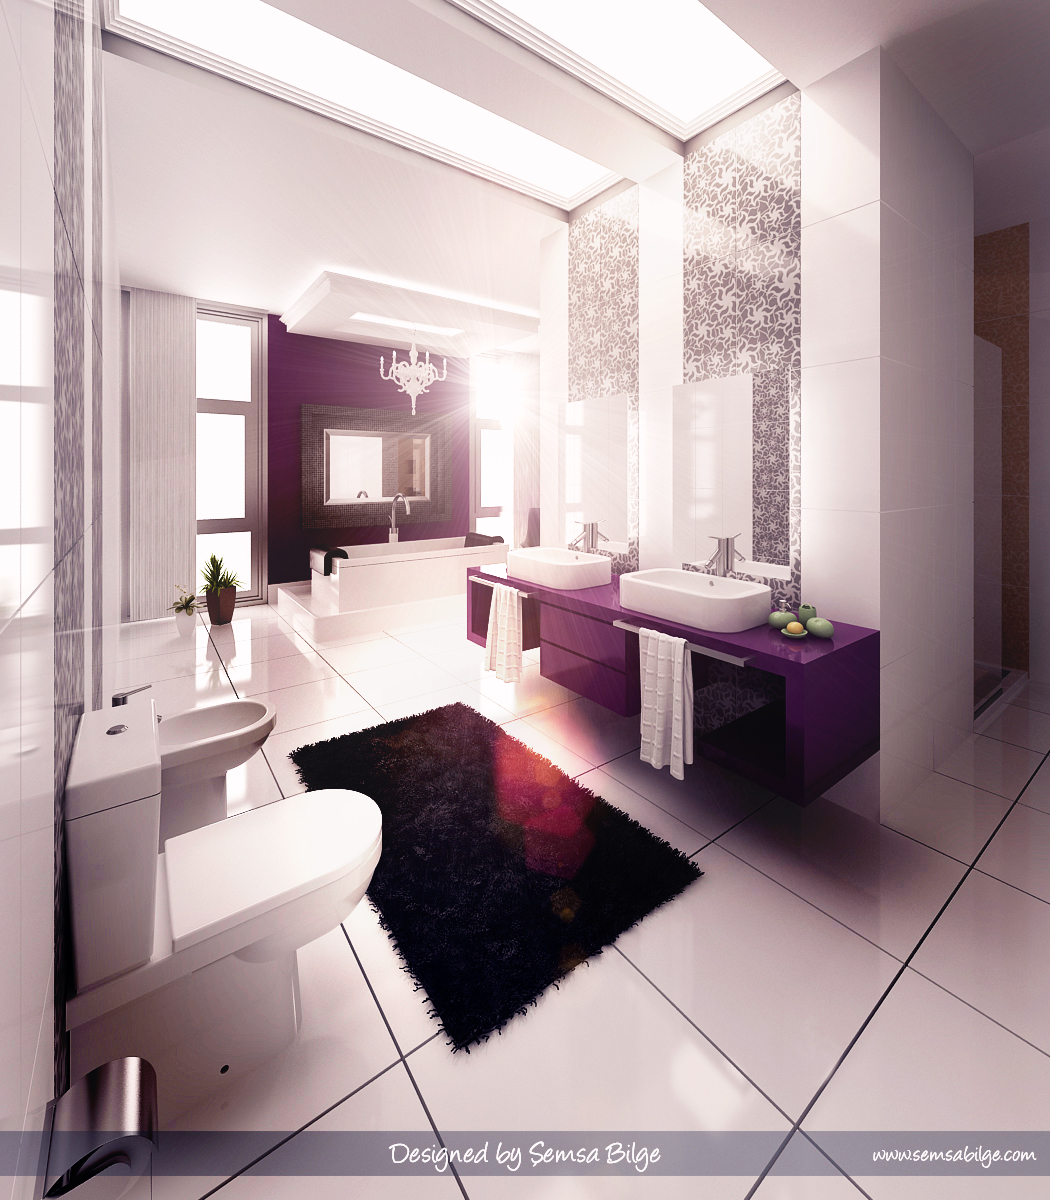 bathroom design modern inspiring house | Inspiring Bathroom Designs for the Soul